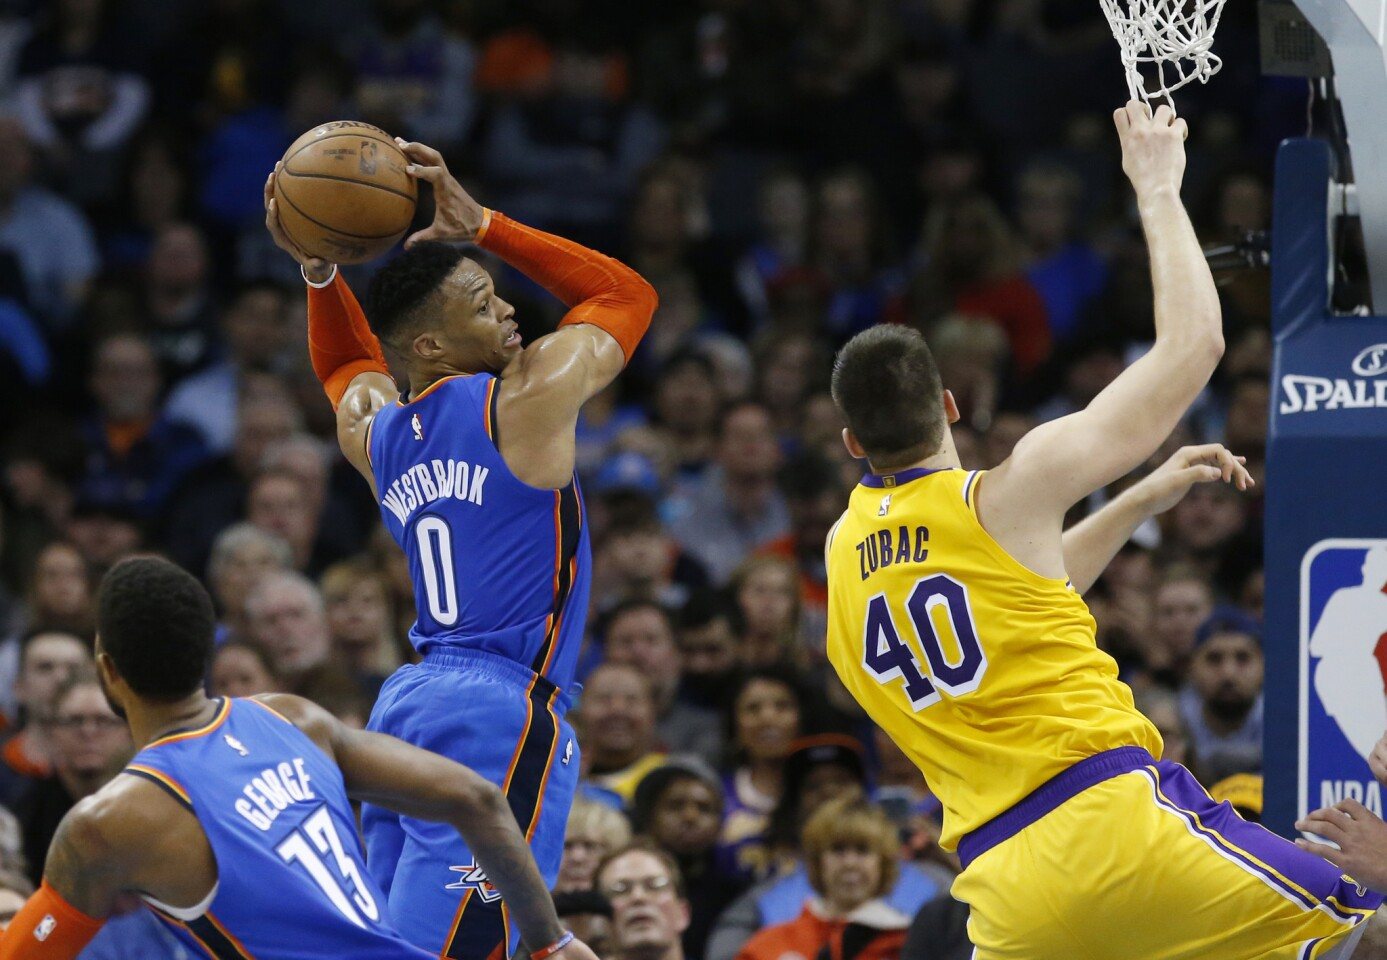 Oklahoma City Thunder guard Russell Westbrook (0) grabs a rebound between teammate Paul George (13) and Los Angeles Lakers center Ivica Zubac (40) during an NBA basketball game between the Los Angeles Lakers and the Oklahoma City Thunder in Oklahoma City, Thursday, Jan. 17, 2019. (AP Photo/Sue Ogrocki)